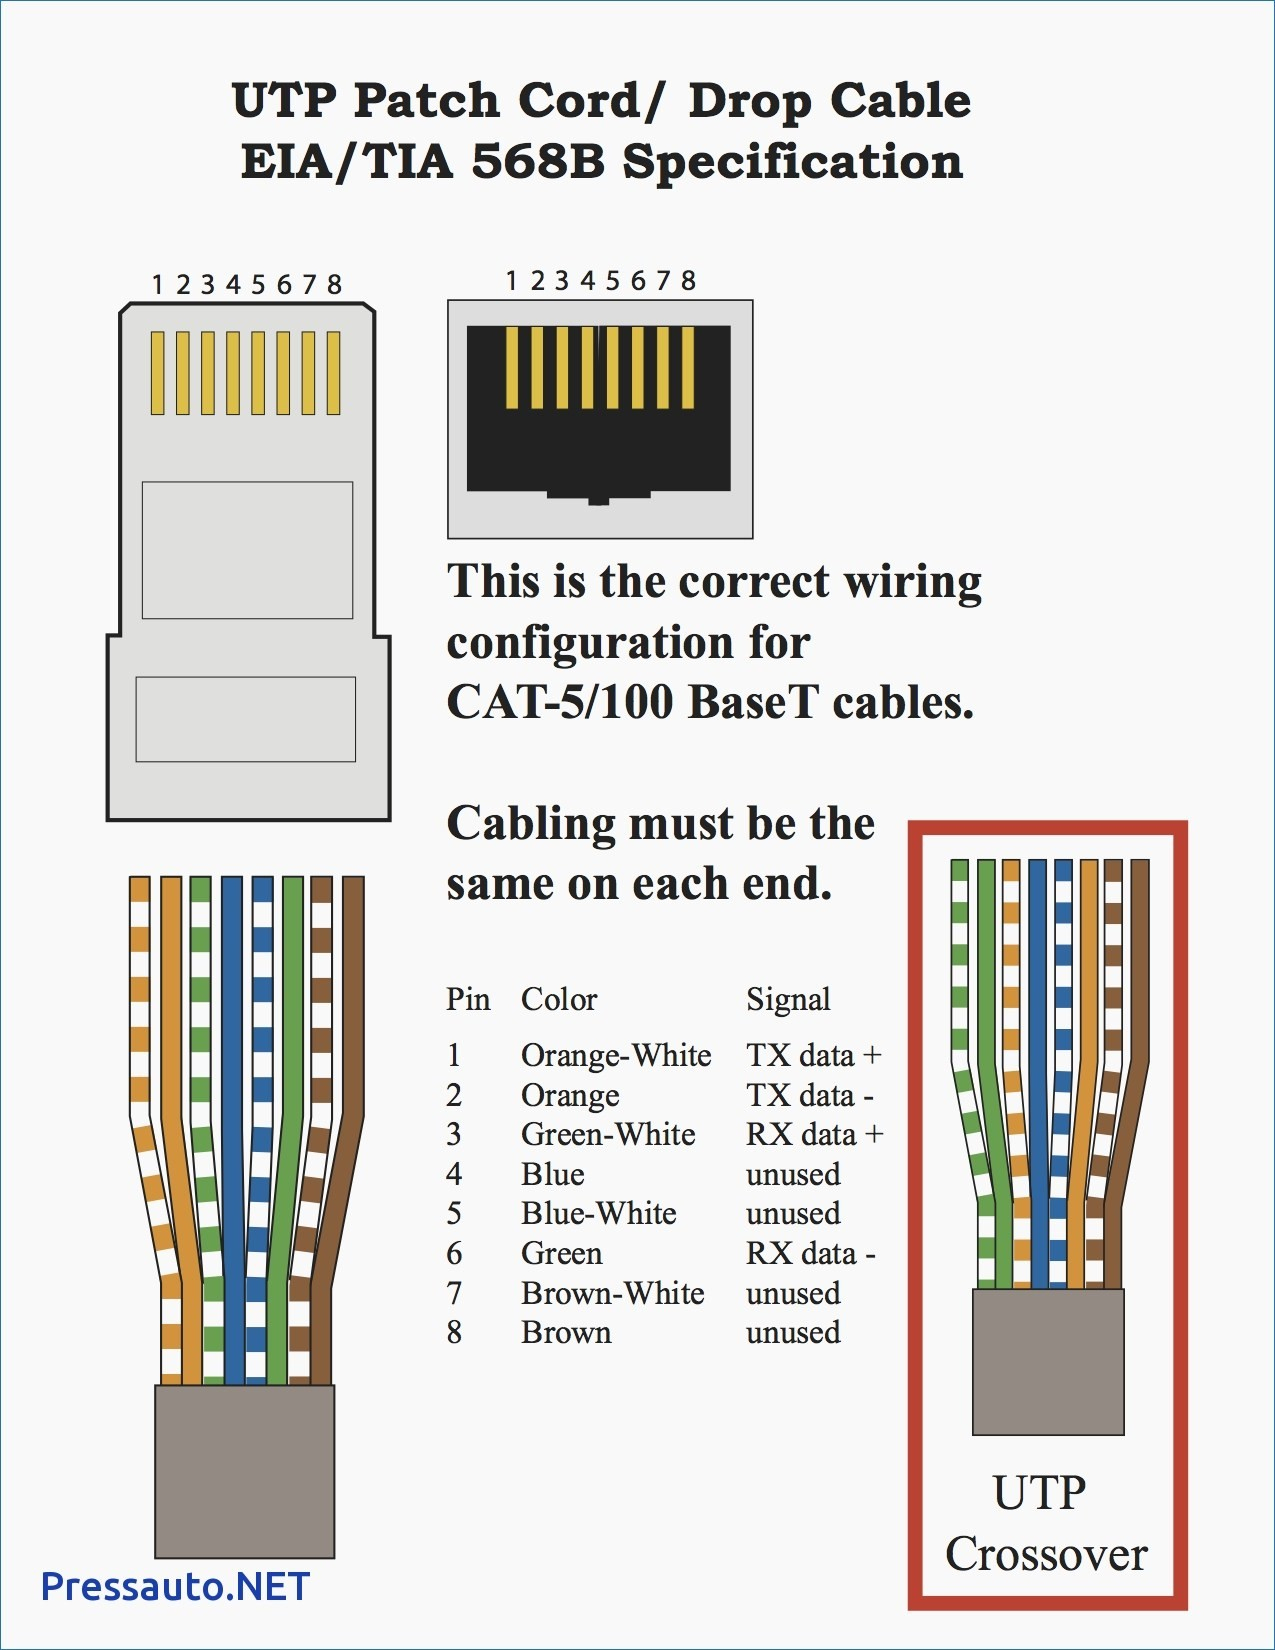 Wiring Diagram For A Cat5 Cable Valid Ieee 568B At Rj45 568B At Ieee - 568 B Wiring Diagram